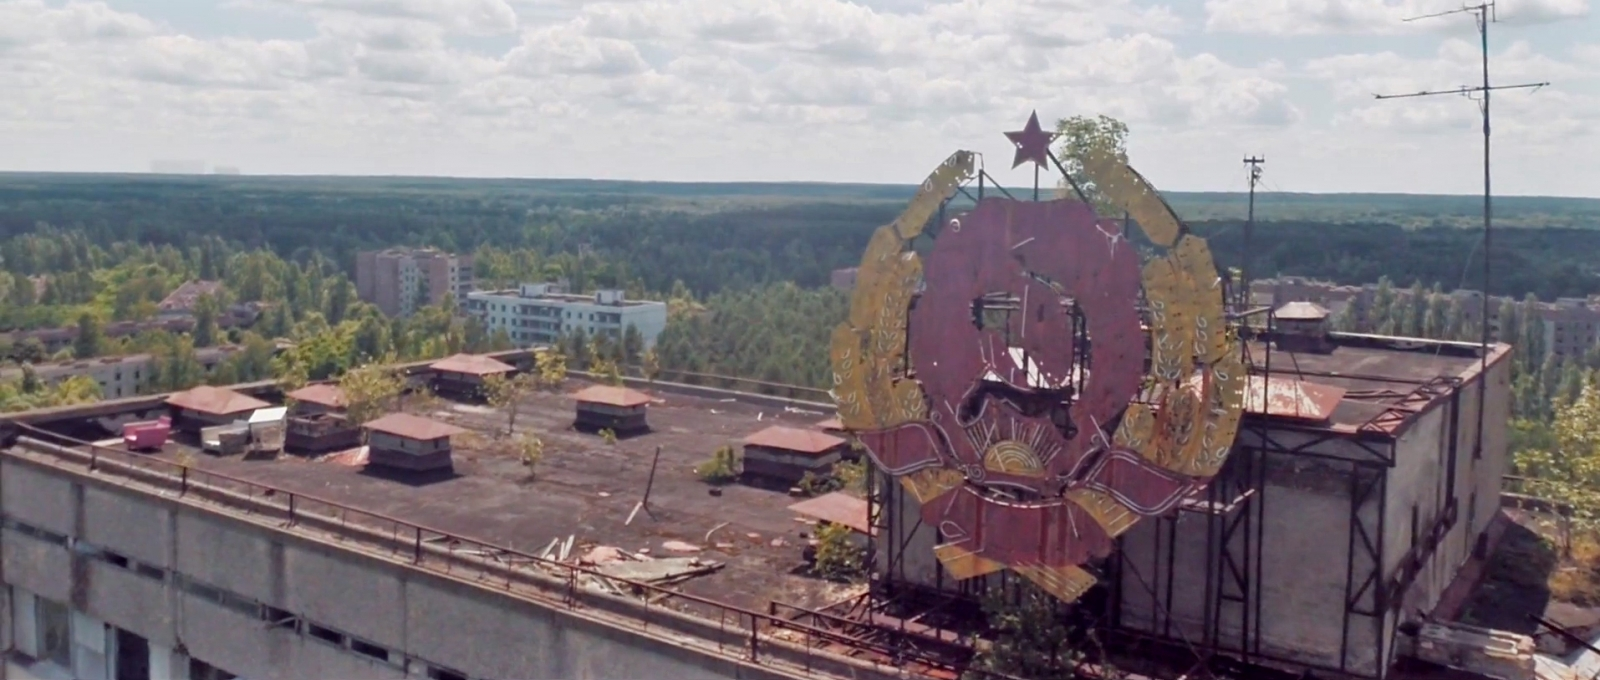 drone usa with Chernobyl Helicopter Drone Captures Eerie Post Apocalyptic Video Footage Decaying City 1477106 on Tanitim Tarihi Belli Olan 2018 Volkswagen Jetta Icin Beklentileri Artiran Aciklamalar in addition Yellow Bee Hive On A White Background Bee Hive Isolate Stock Vector Illustration Of Bee House With A Circular Entrance Vector 18848717 besides Durham Bulls Athletic Park Durham Nc Usa together with Hong Kong Drone 7dc166fe 06f0 4c39 8ef0 4e75c6cc799e as well Forget Apple Pay And Bitcoin Emojis Are The New Currency At Dominos 2015 05 13.